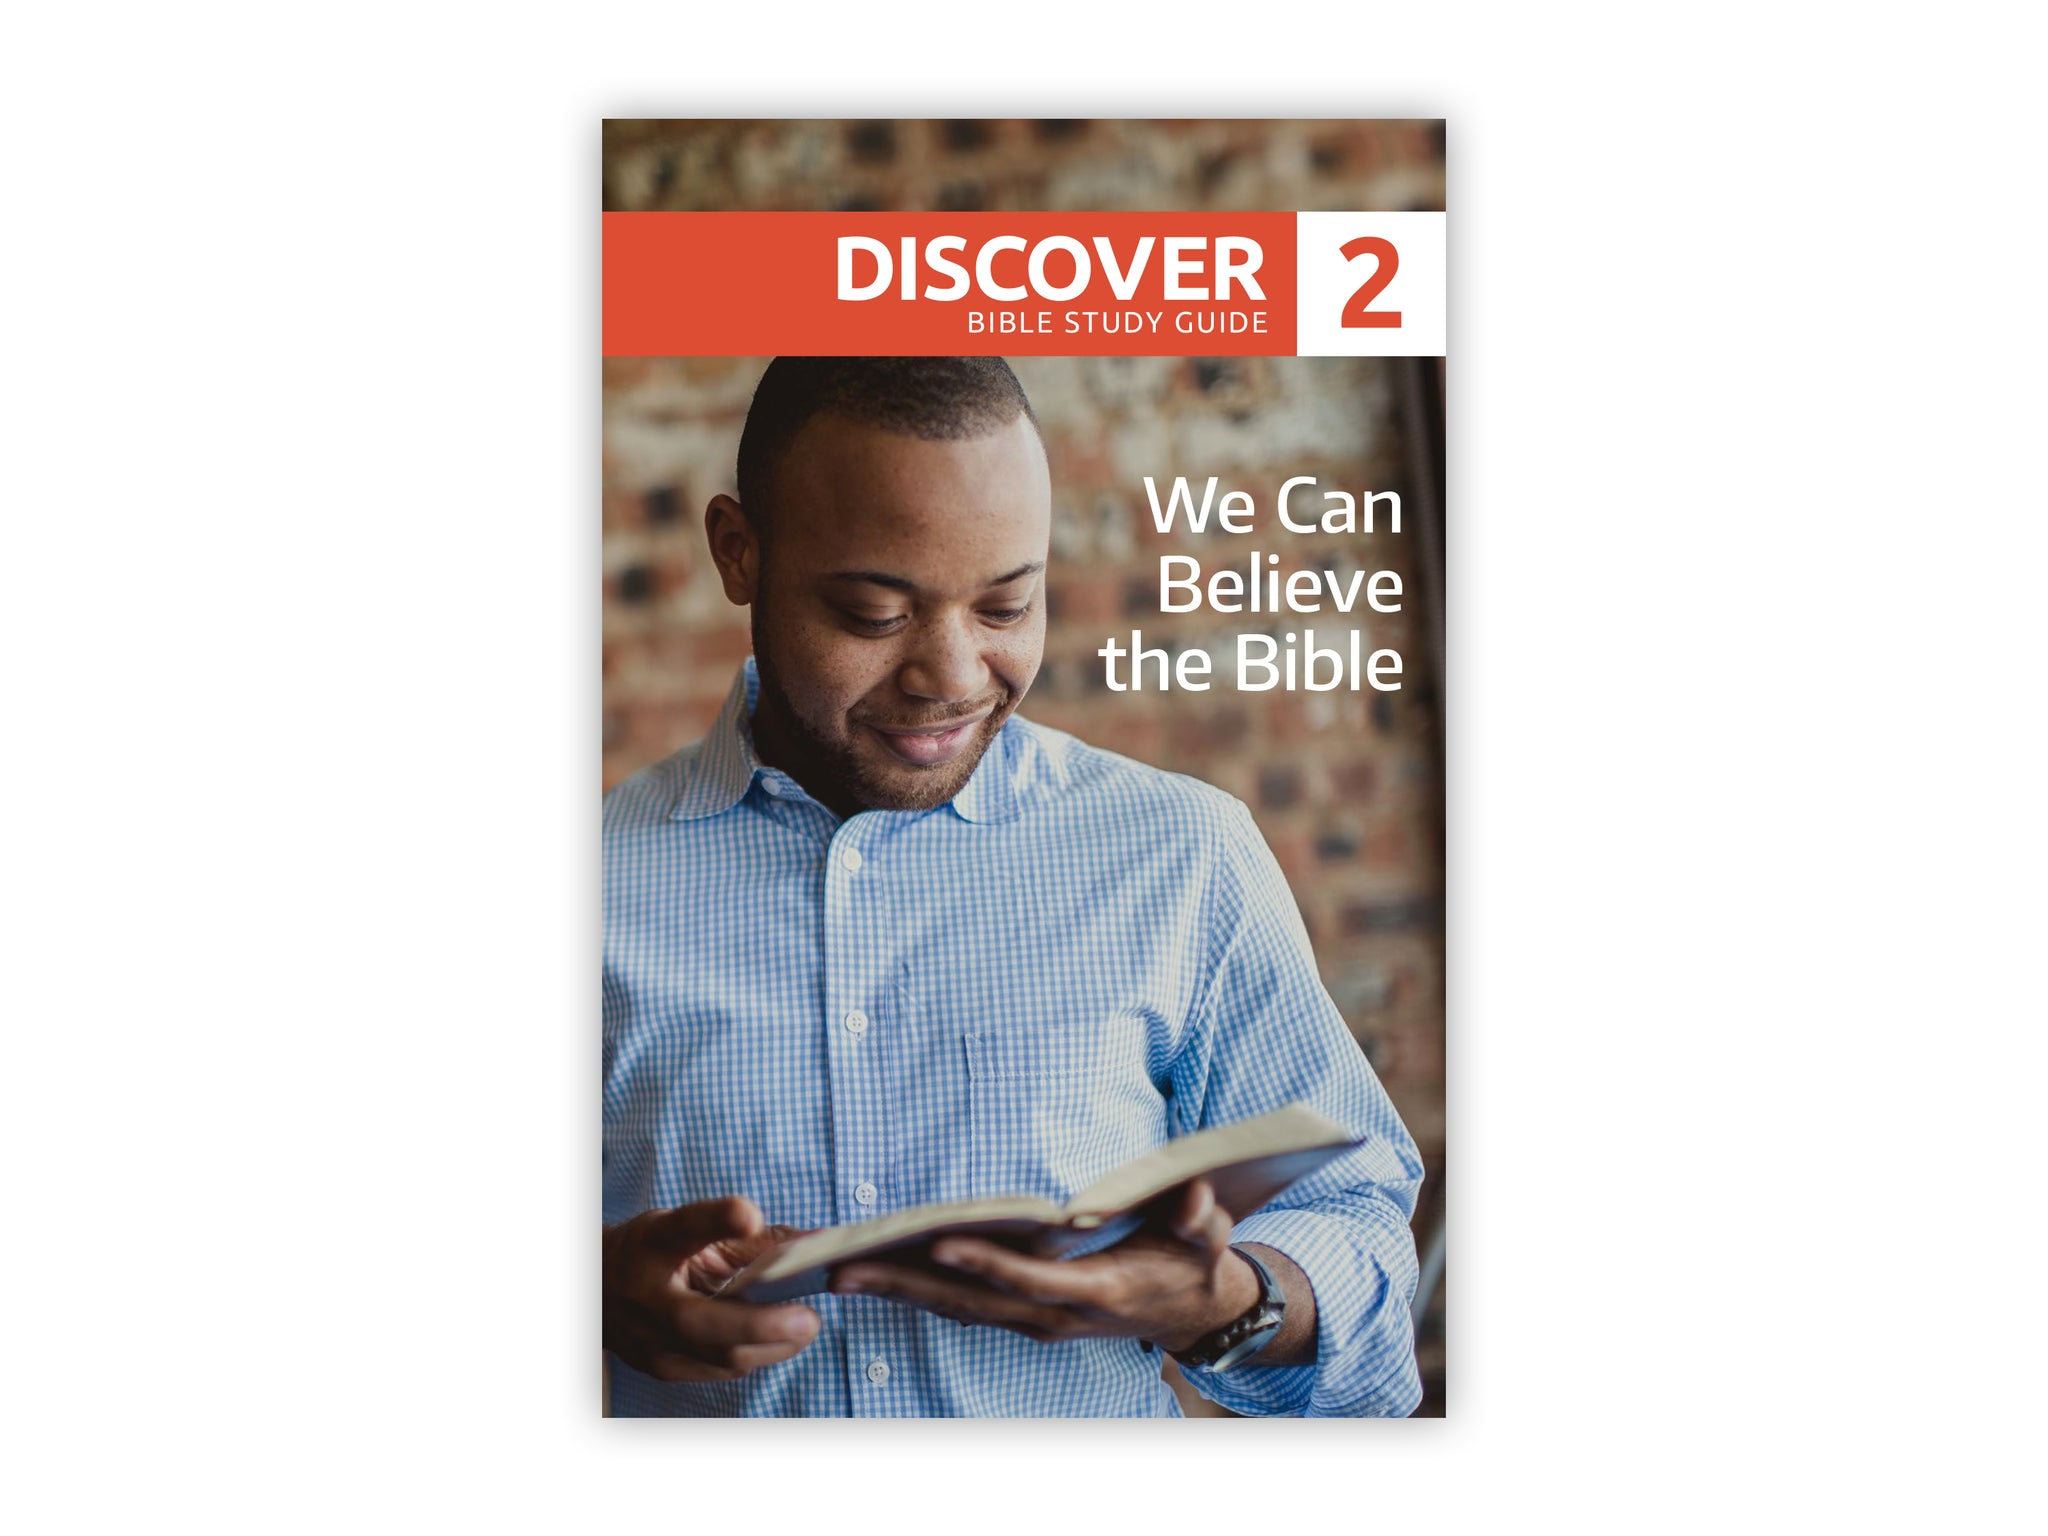 Discover Bible Study Guide #2 - We Can Believe the Bible